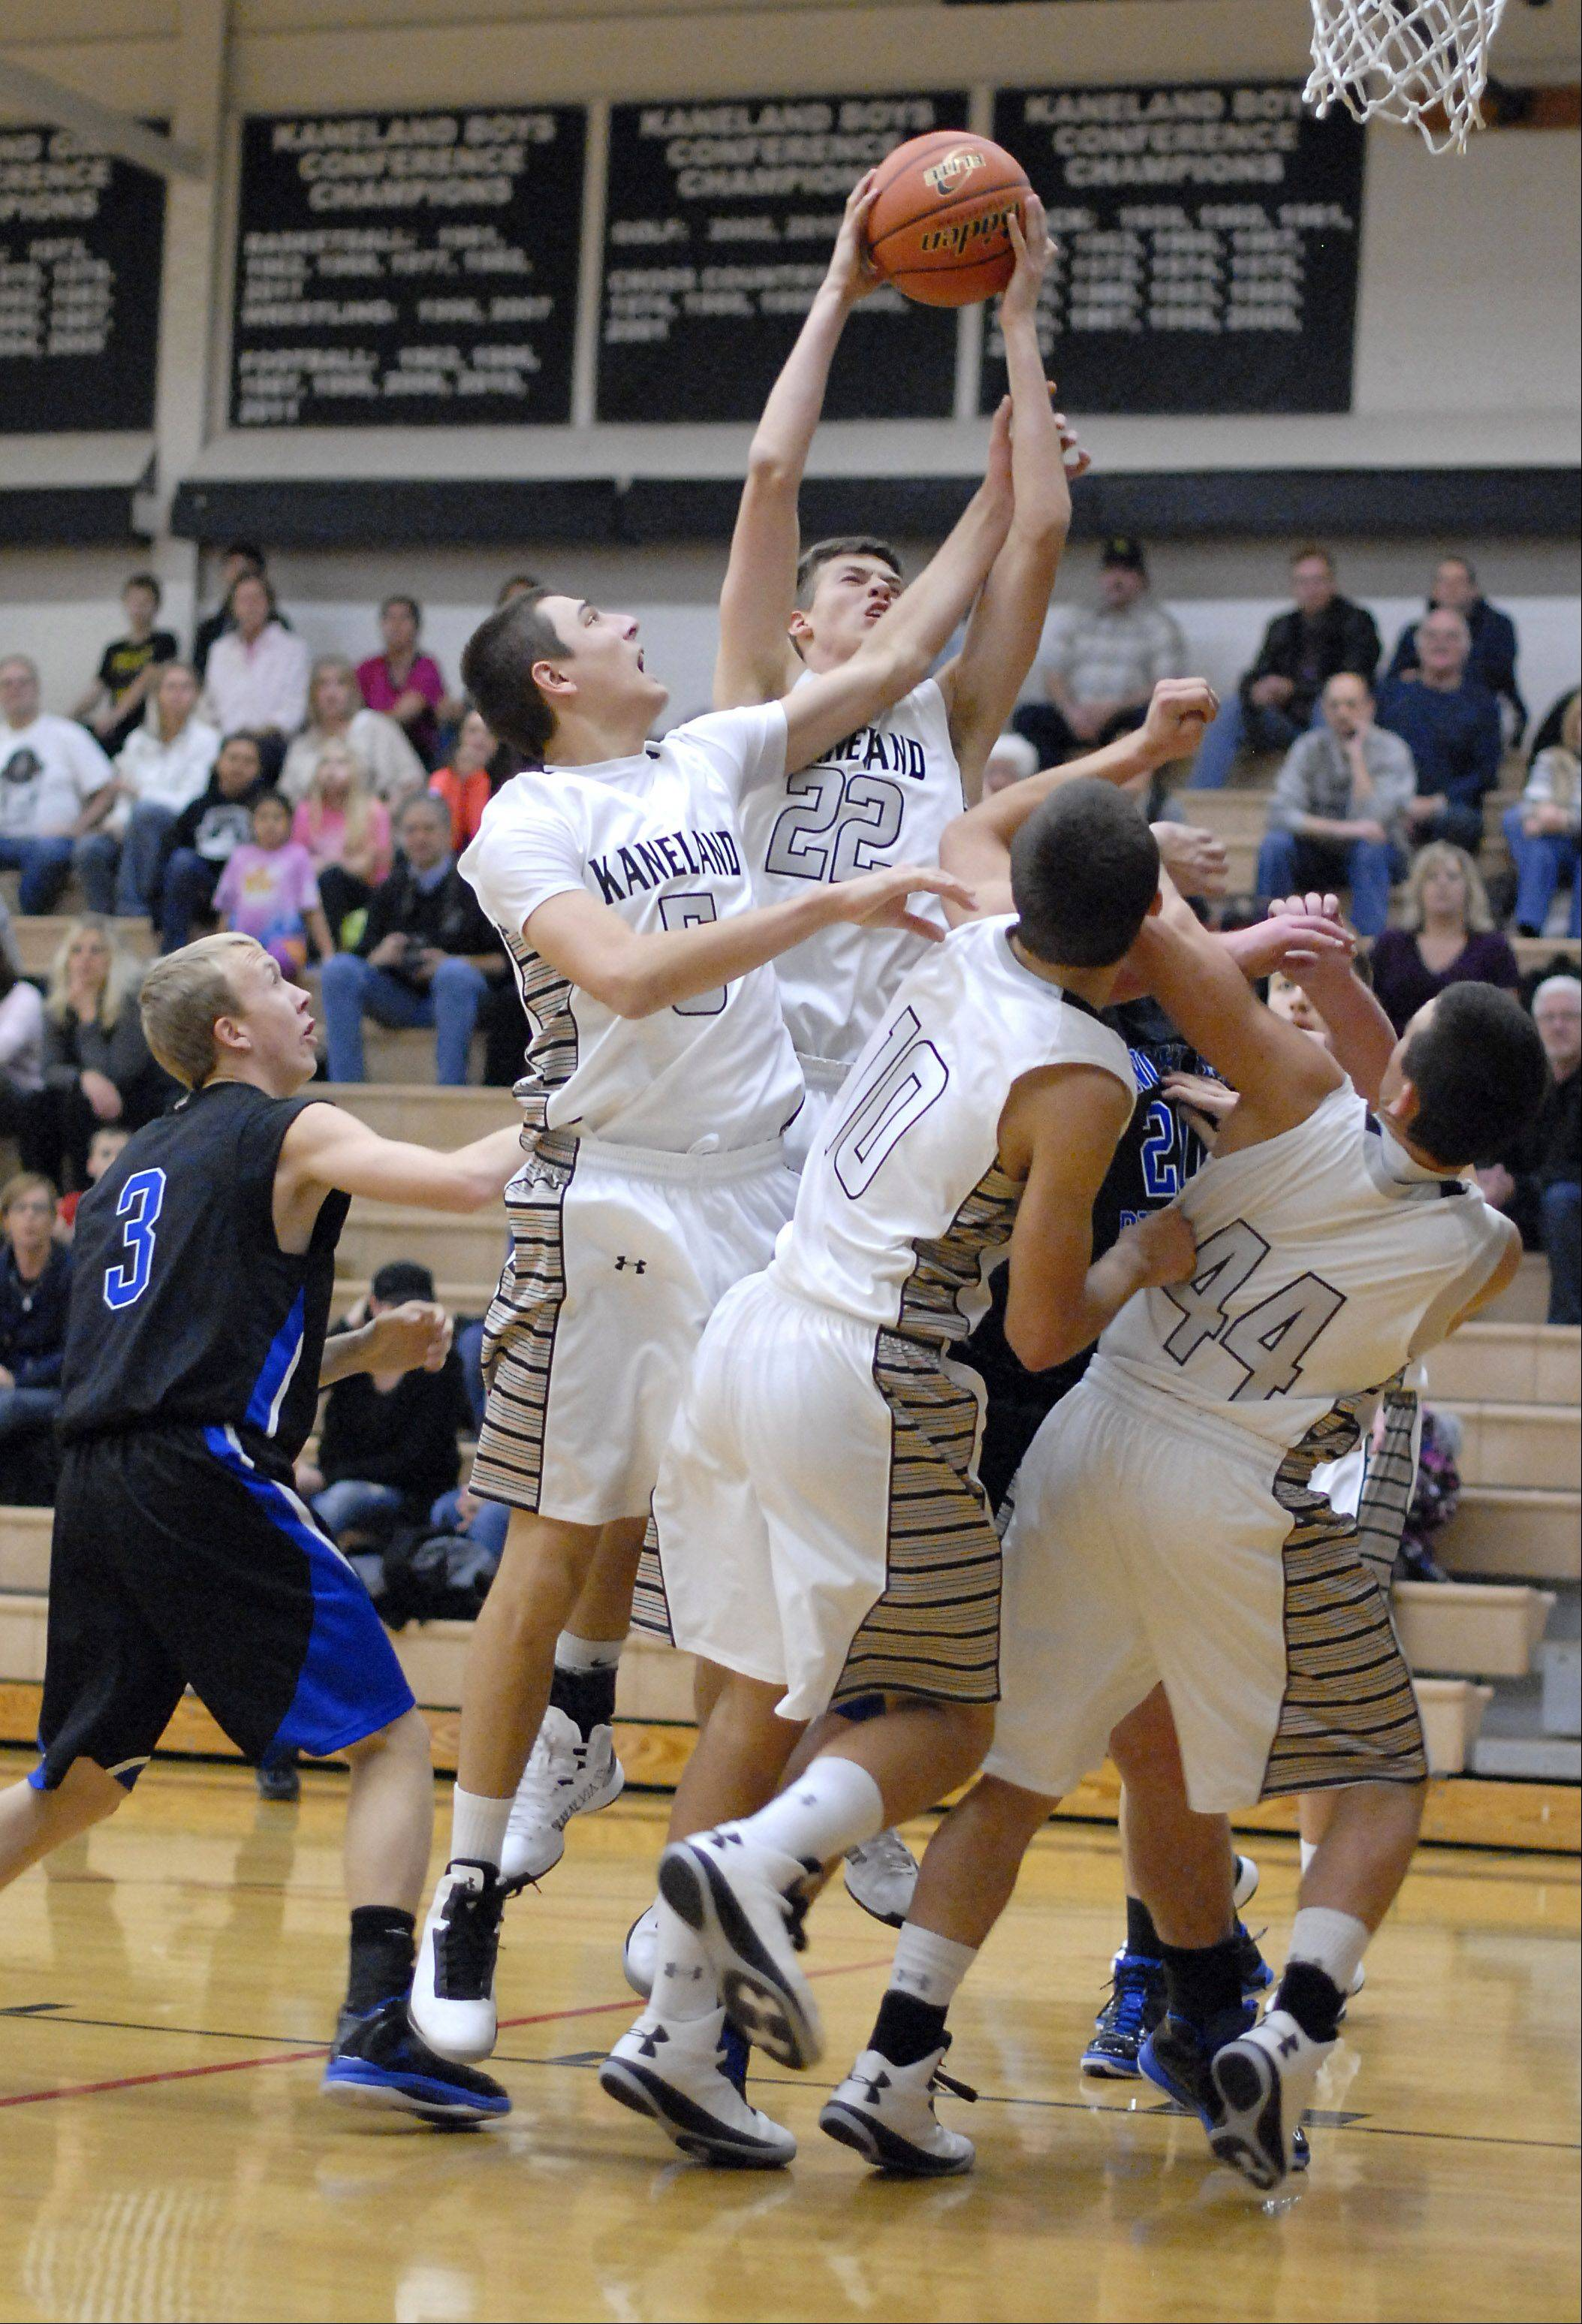 Kaneland's Dan Miller reaches up and grabs a Knights rebound in the first quarter vs. Hinckley-Big Rock on Tuesday, December 11.